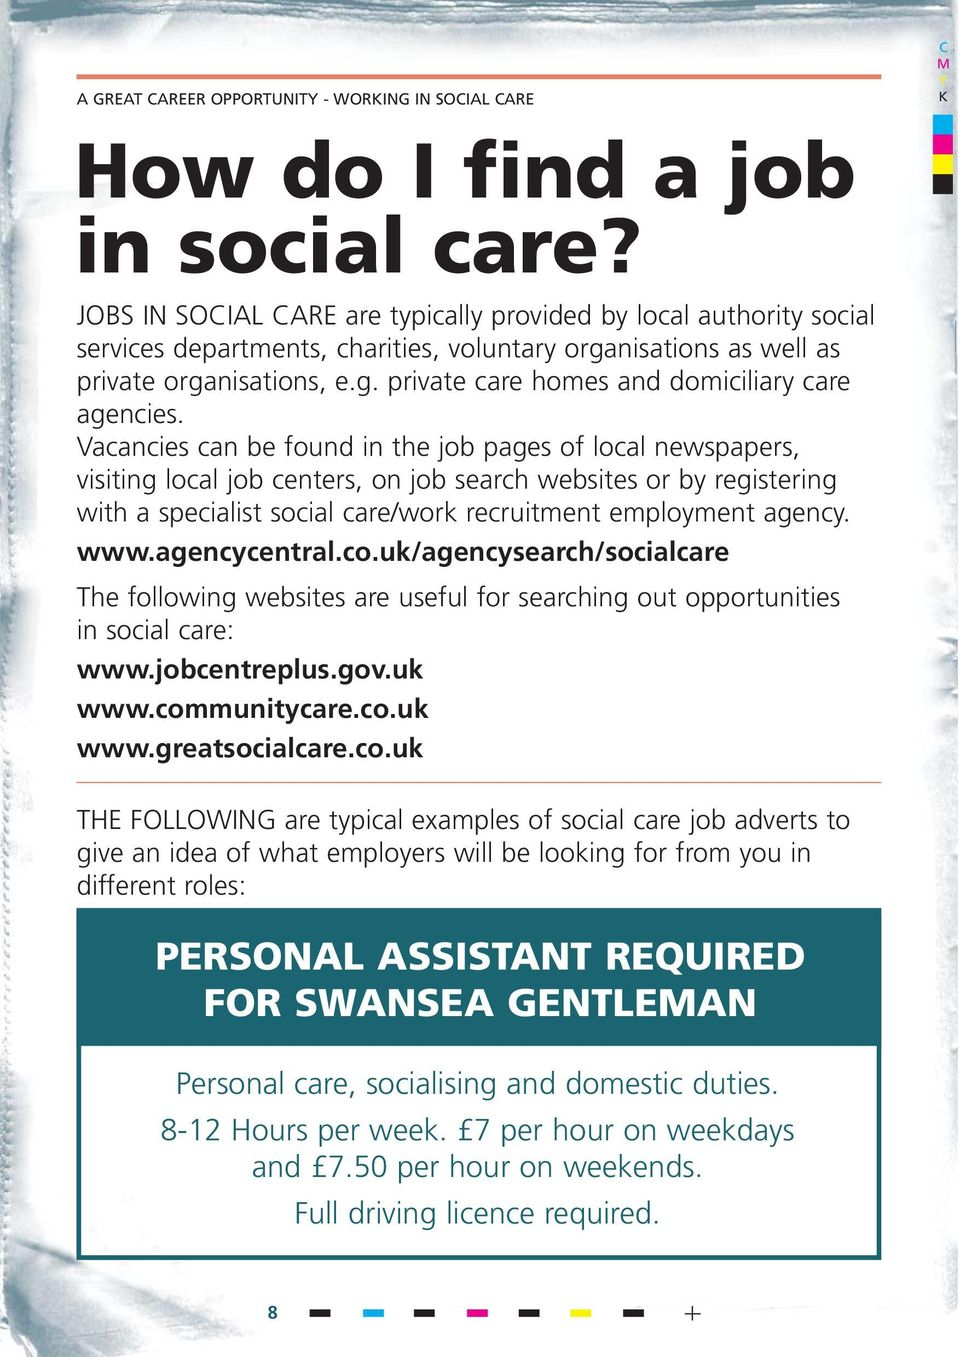 Vacancies can be found in the job pages of local newspapers, visiting local job centers, on job search websites or by registering with a specialist social care/work recruitment employment agency. www.